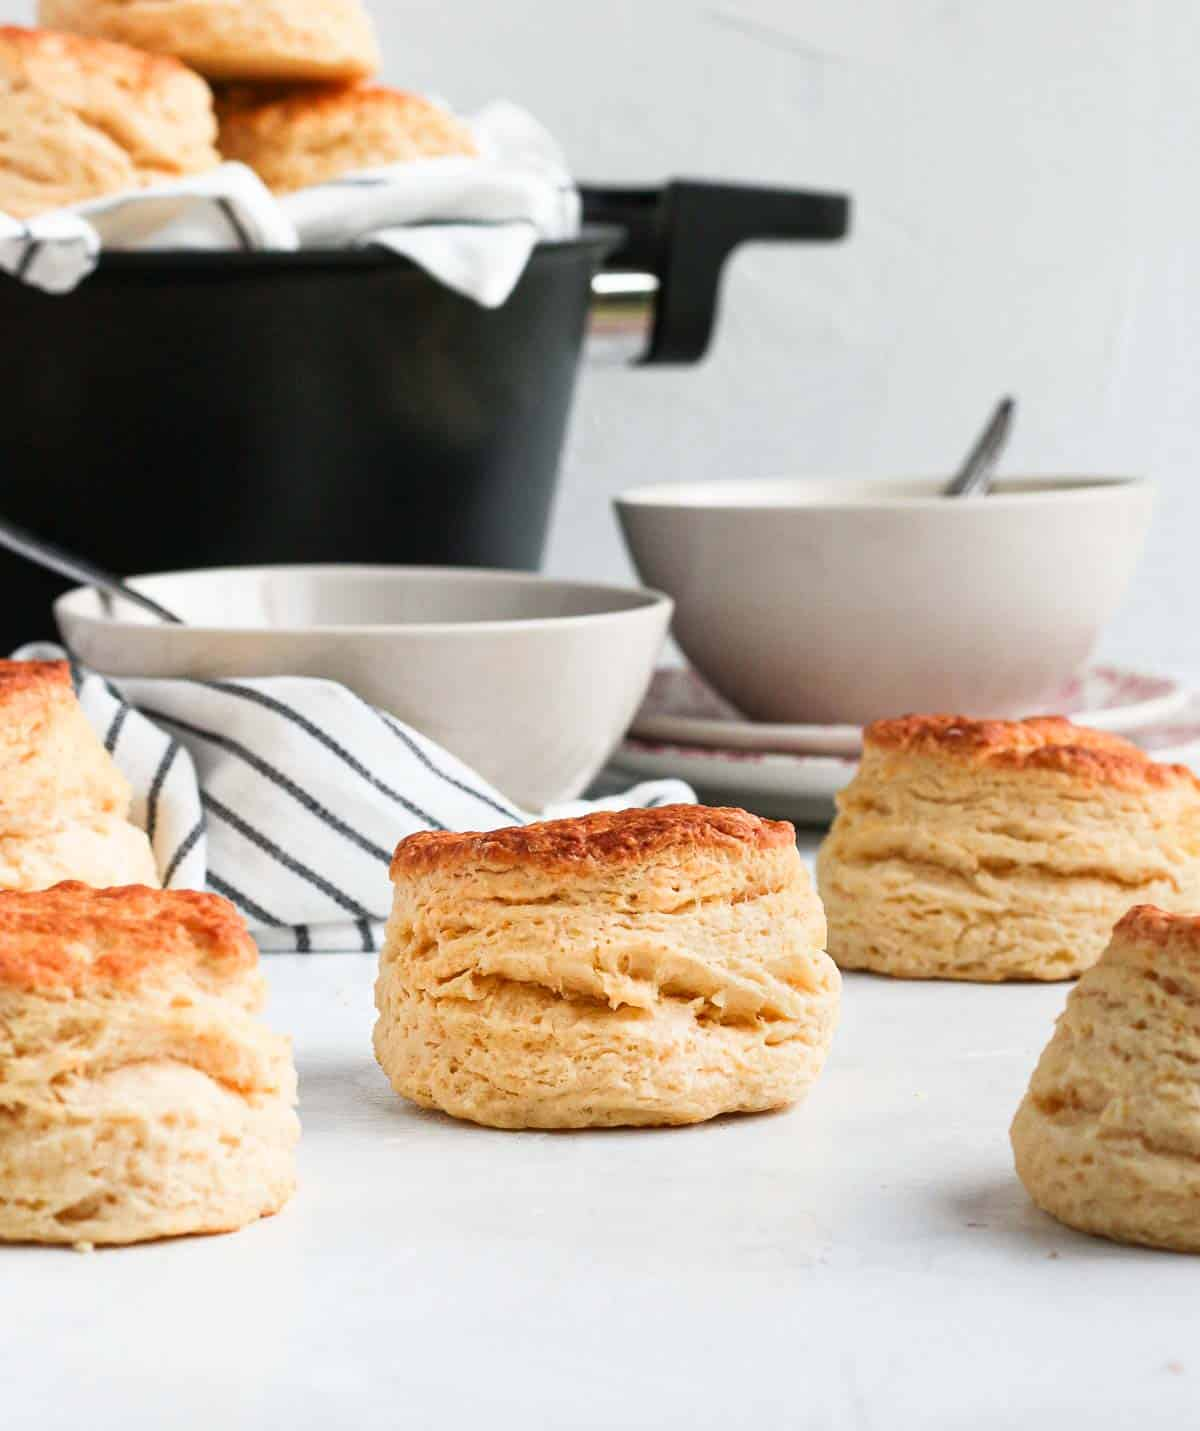 Scones on a white surface with two white bowls and the remoska in the background.